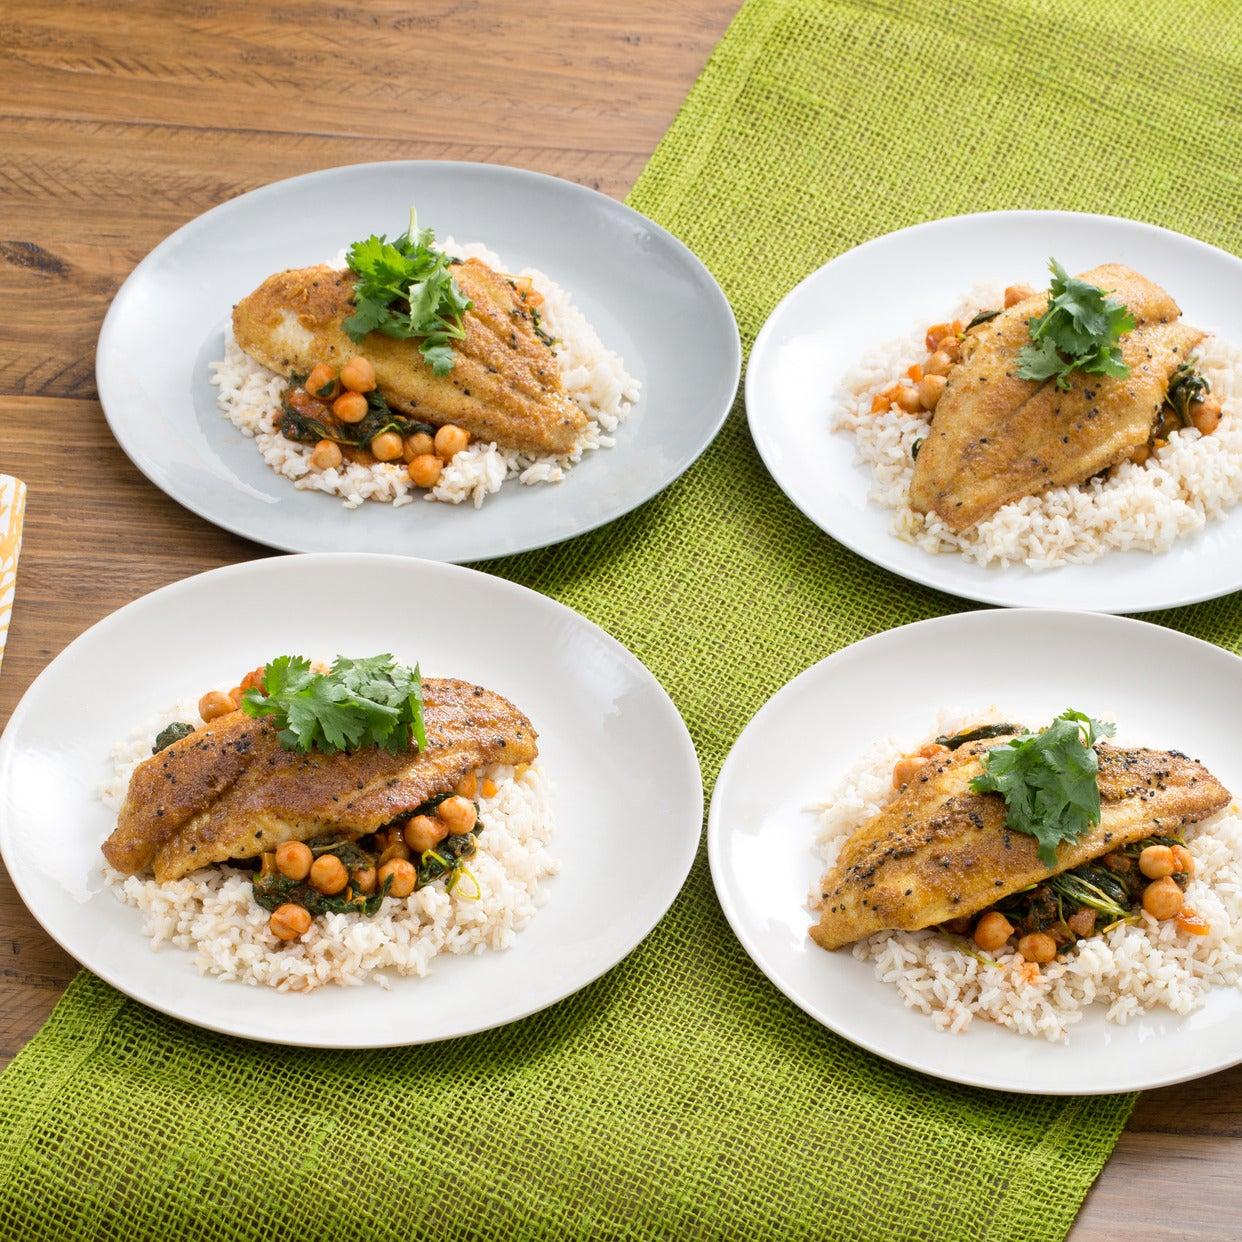 Crispy Curried Catfish with Chana Masala & Brown Rice